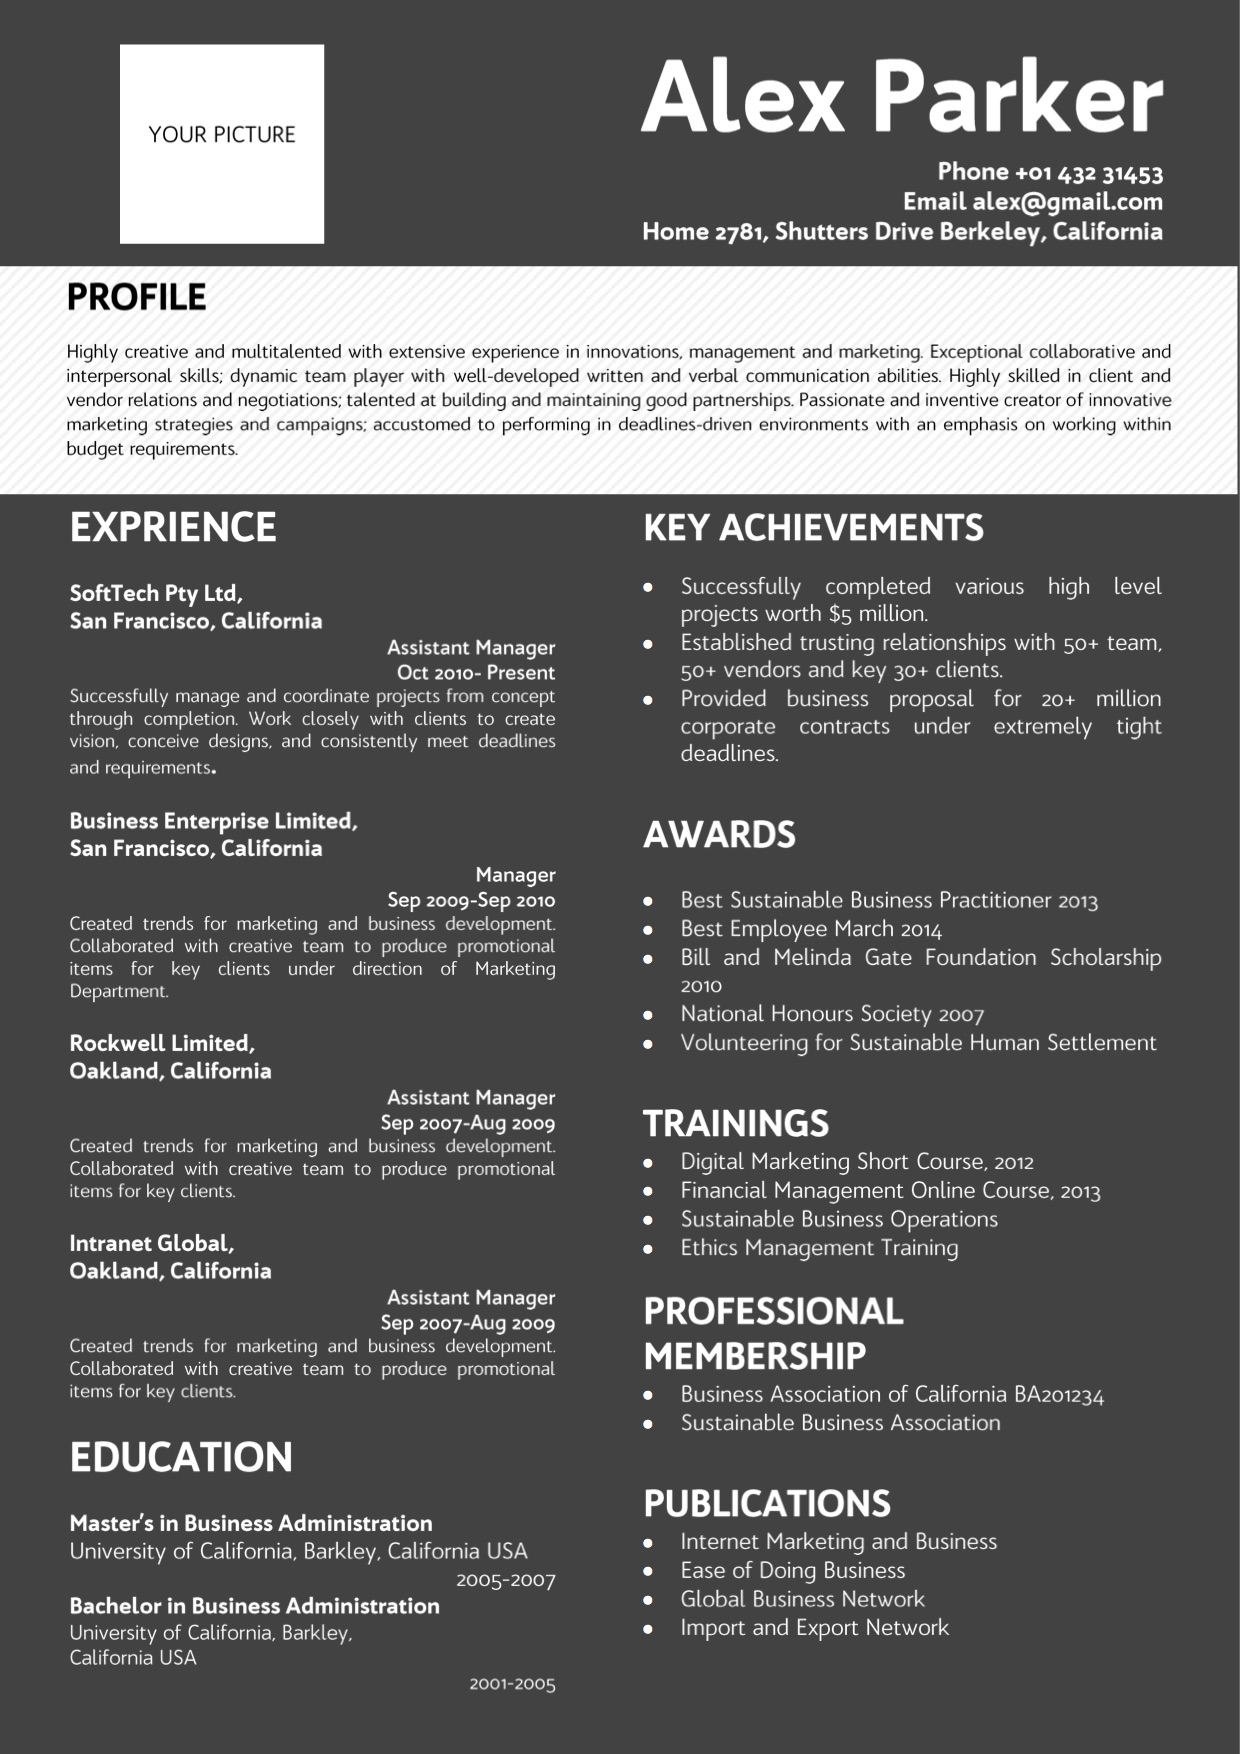 Professional Dark Background Resume blackwhite color Vista Resume